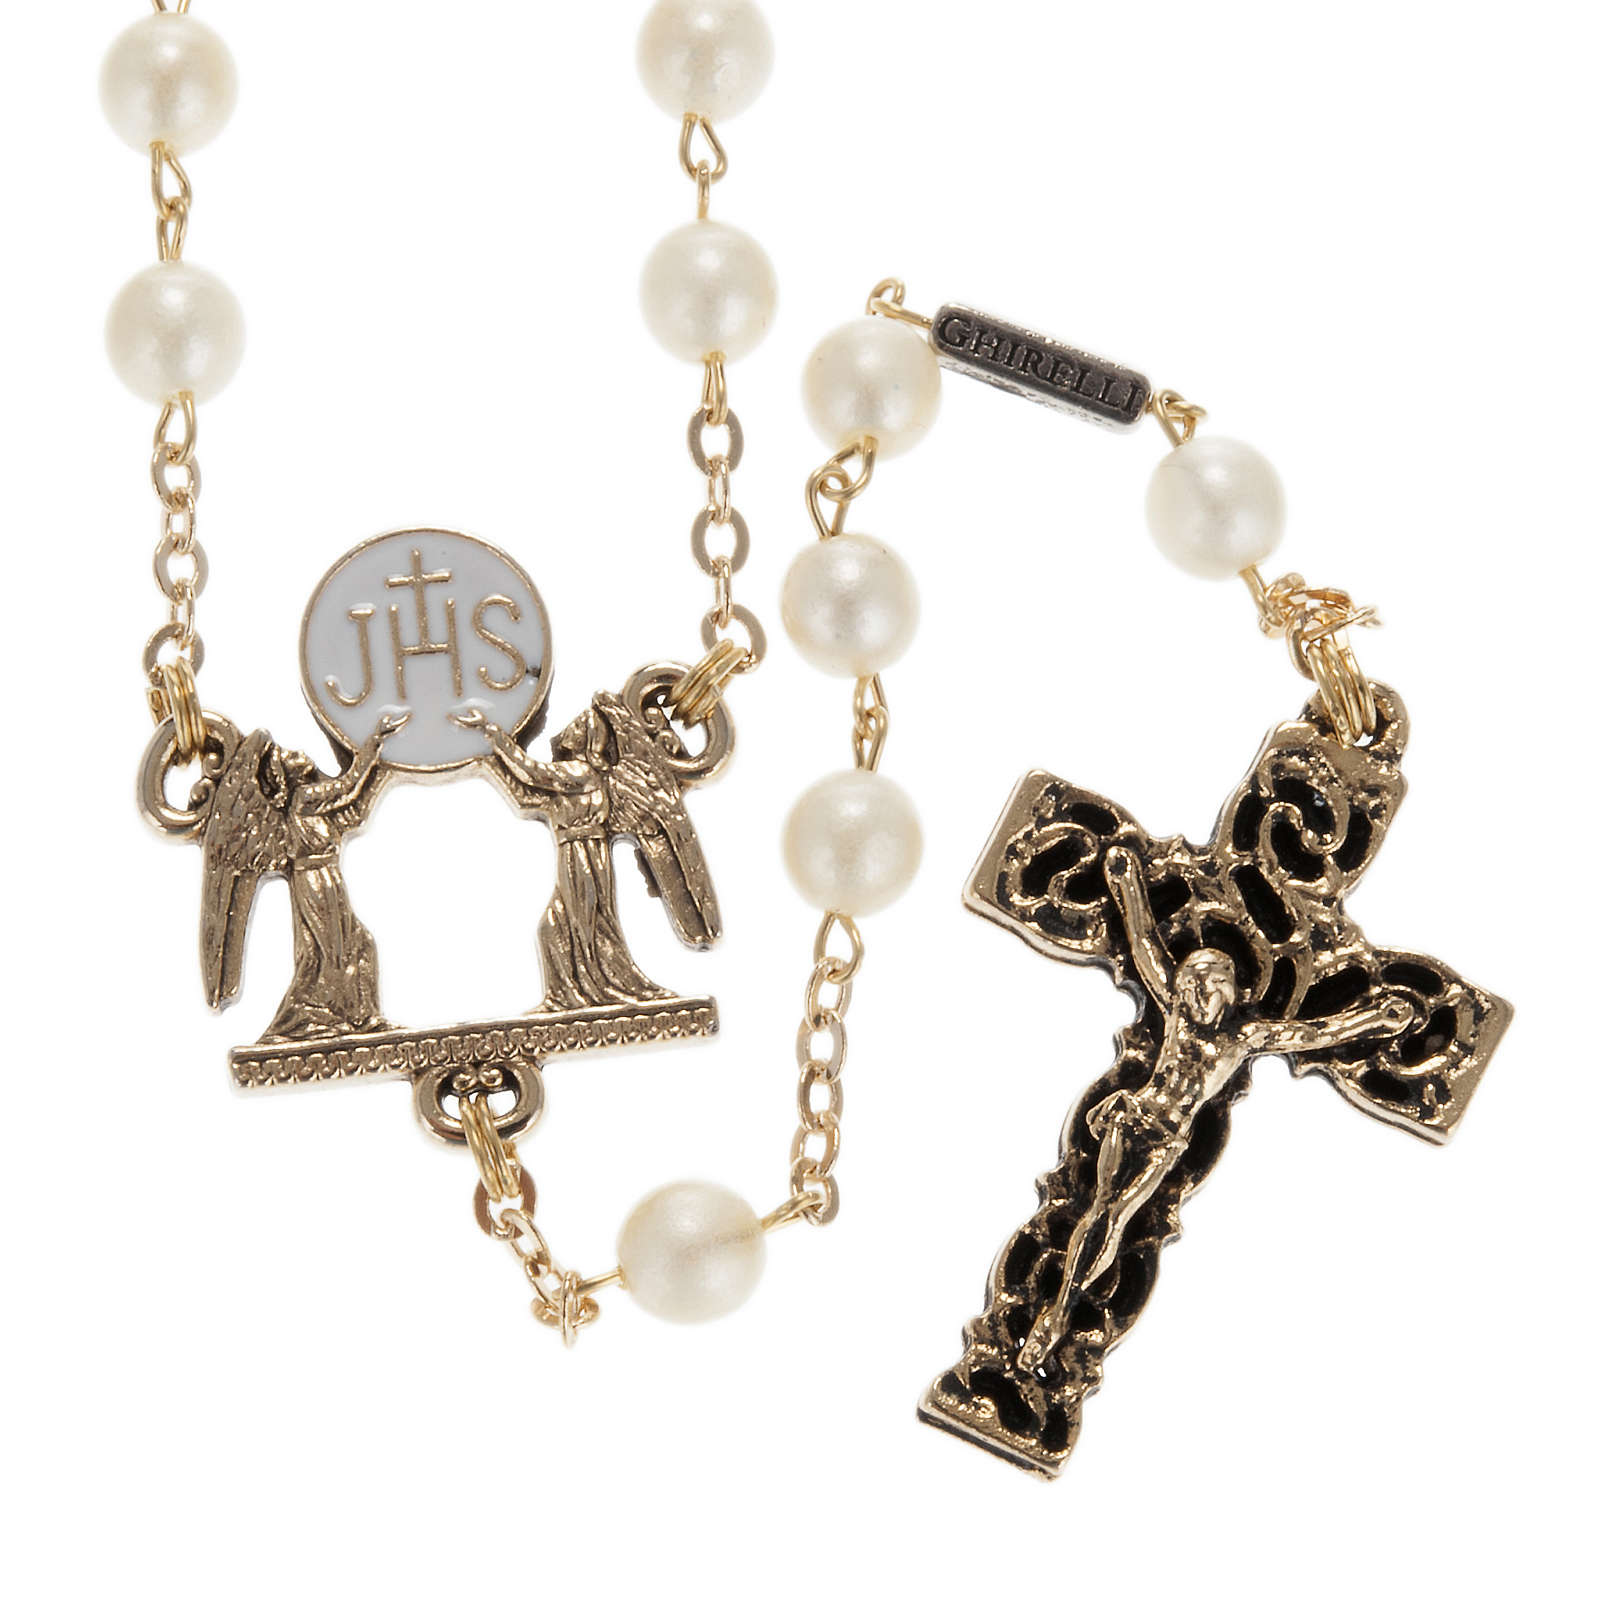 Ghirelli rosary beads, First Communion, white glass 4